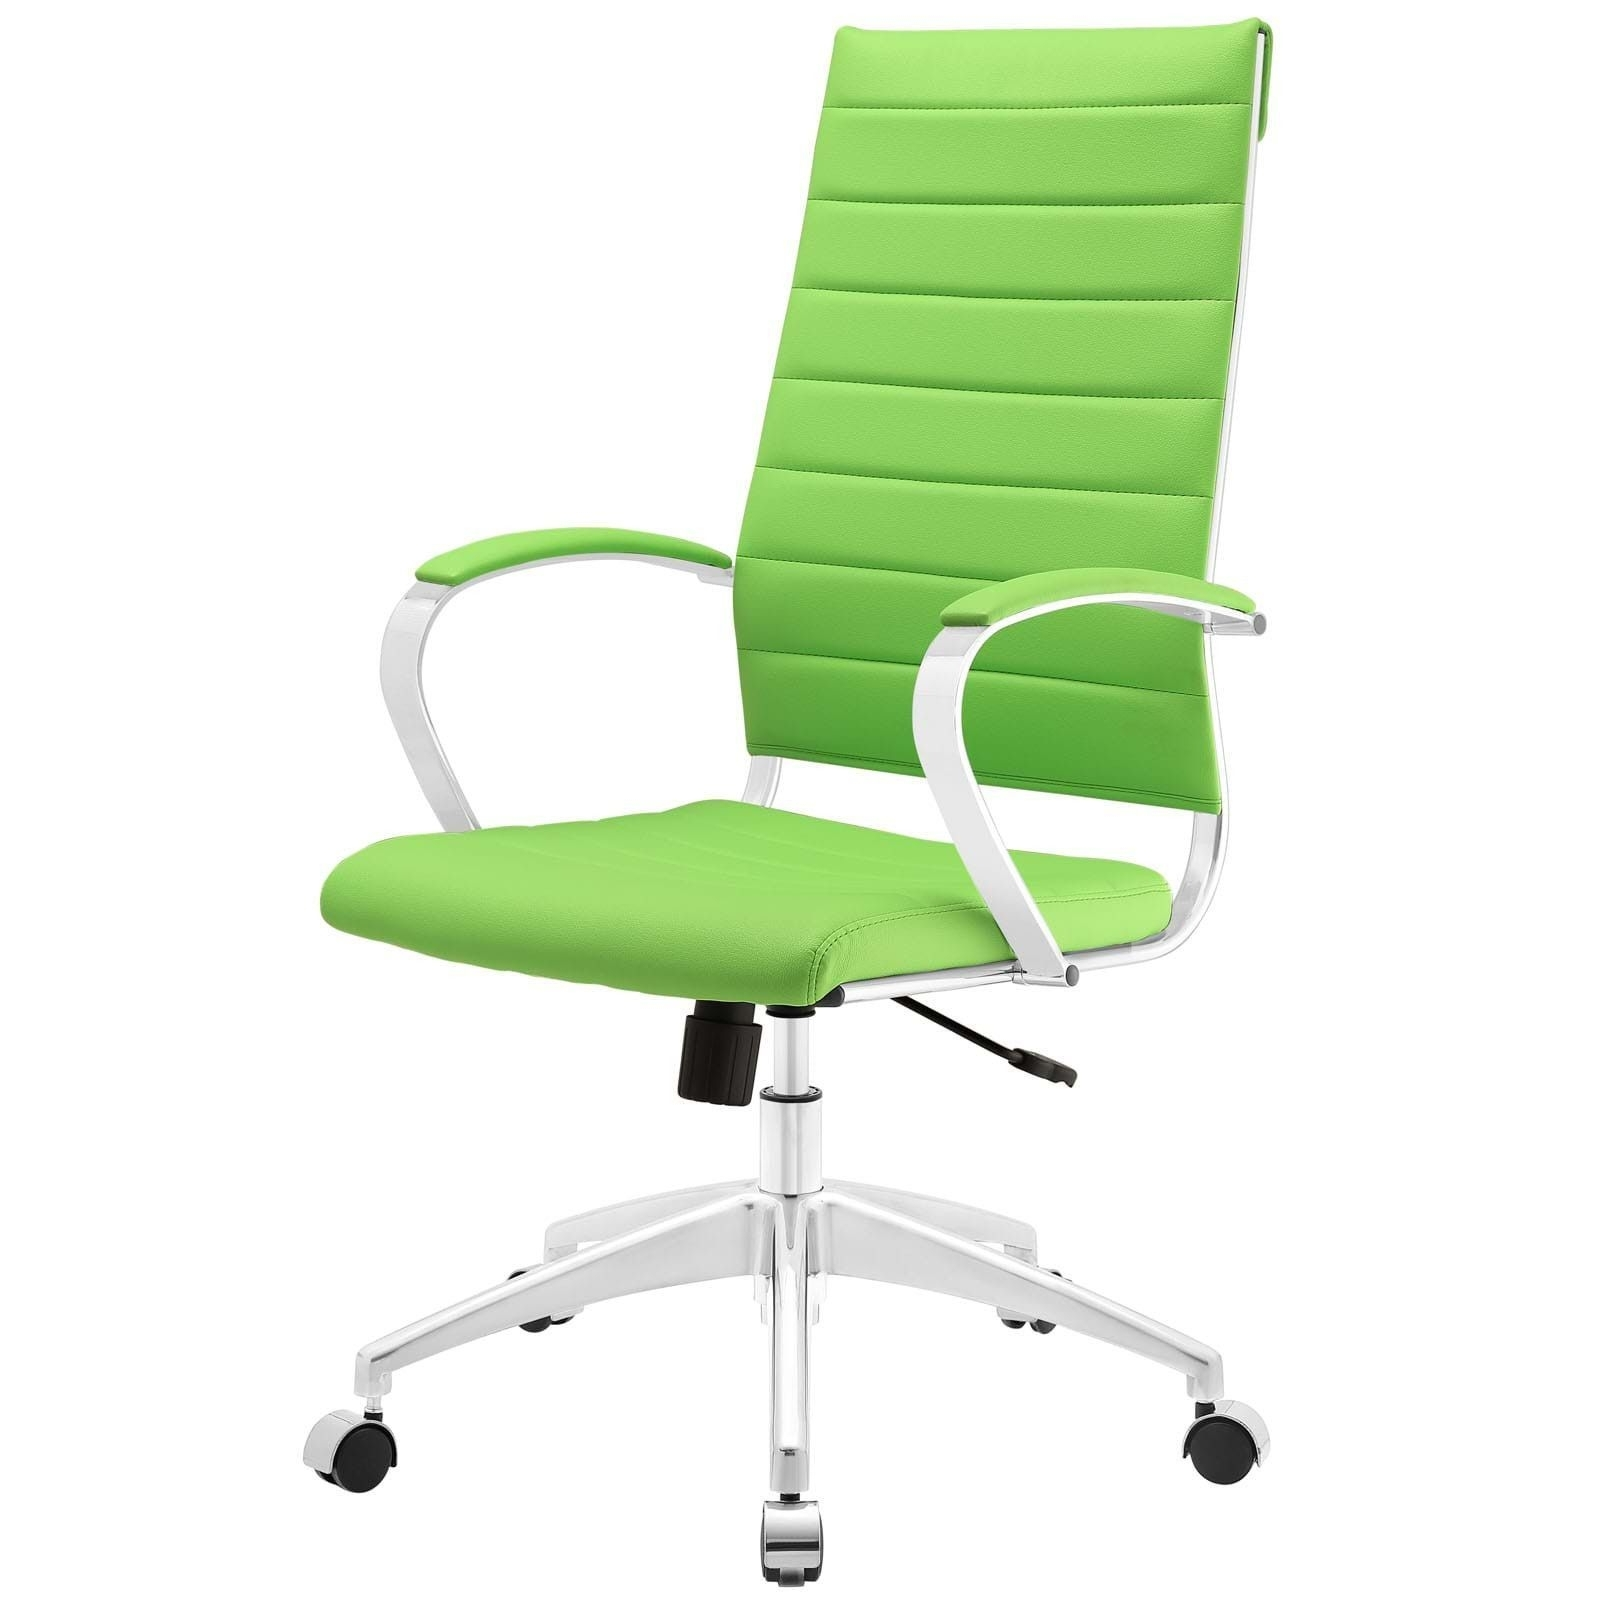 Executive Office Pertaining To Green Executive Office Chairs (View 6 of 20)